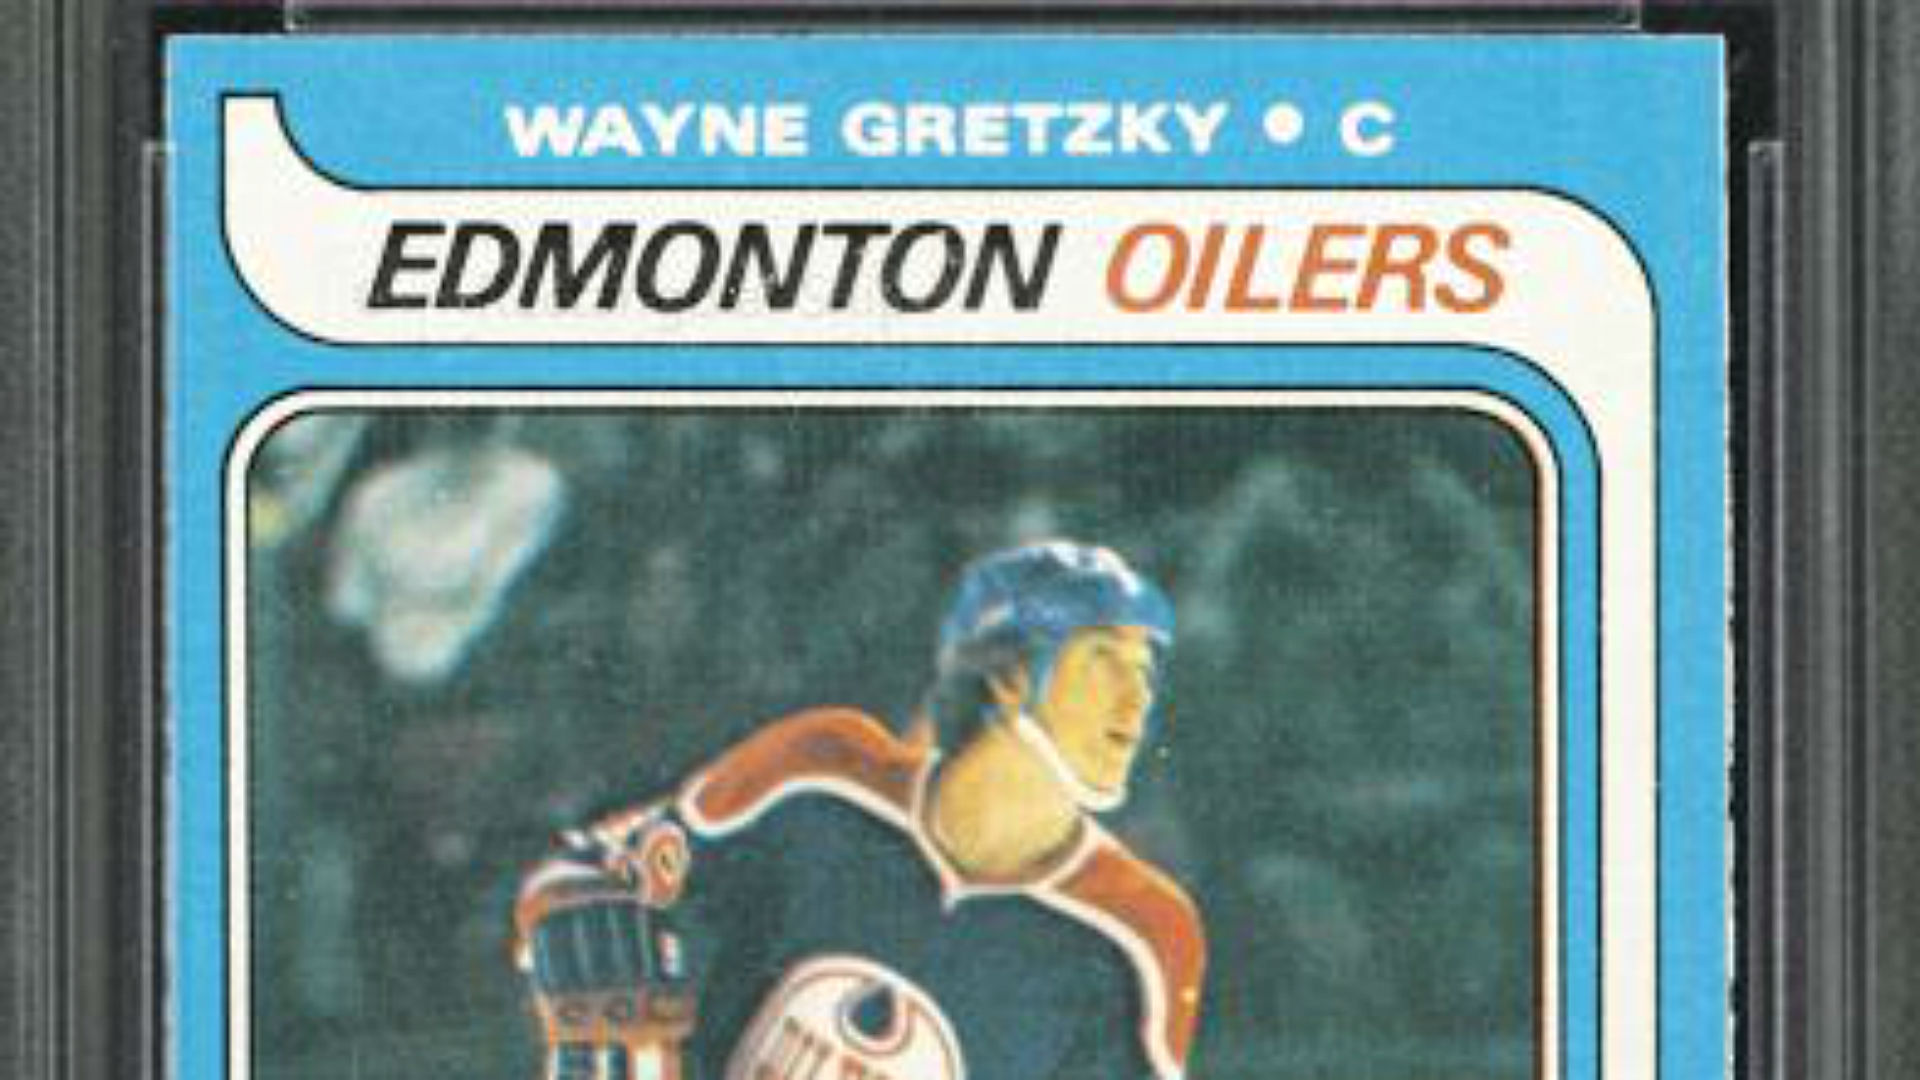 Wayne Gretzky Rookie Card Imperfections And All Sells For Record